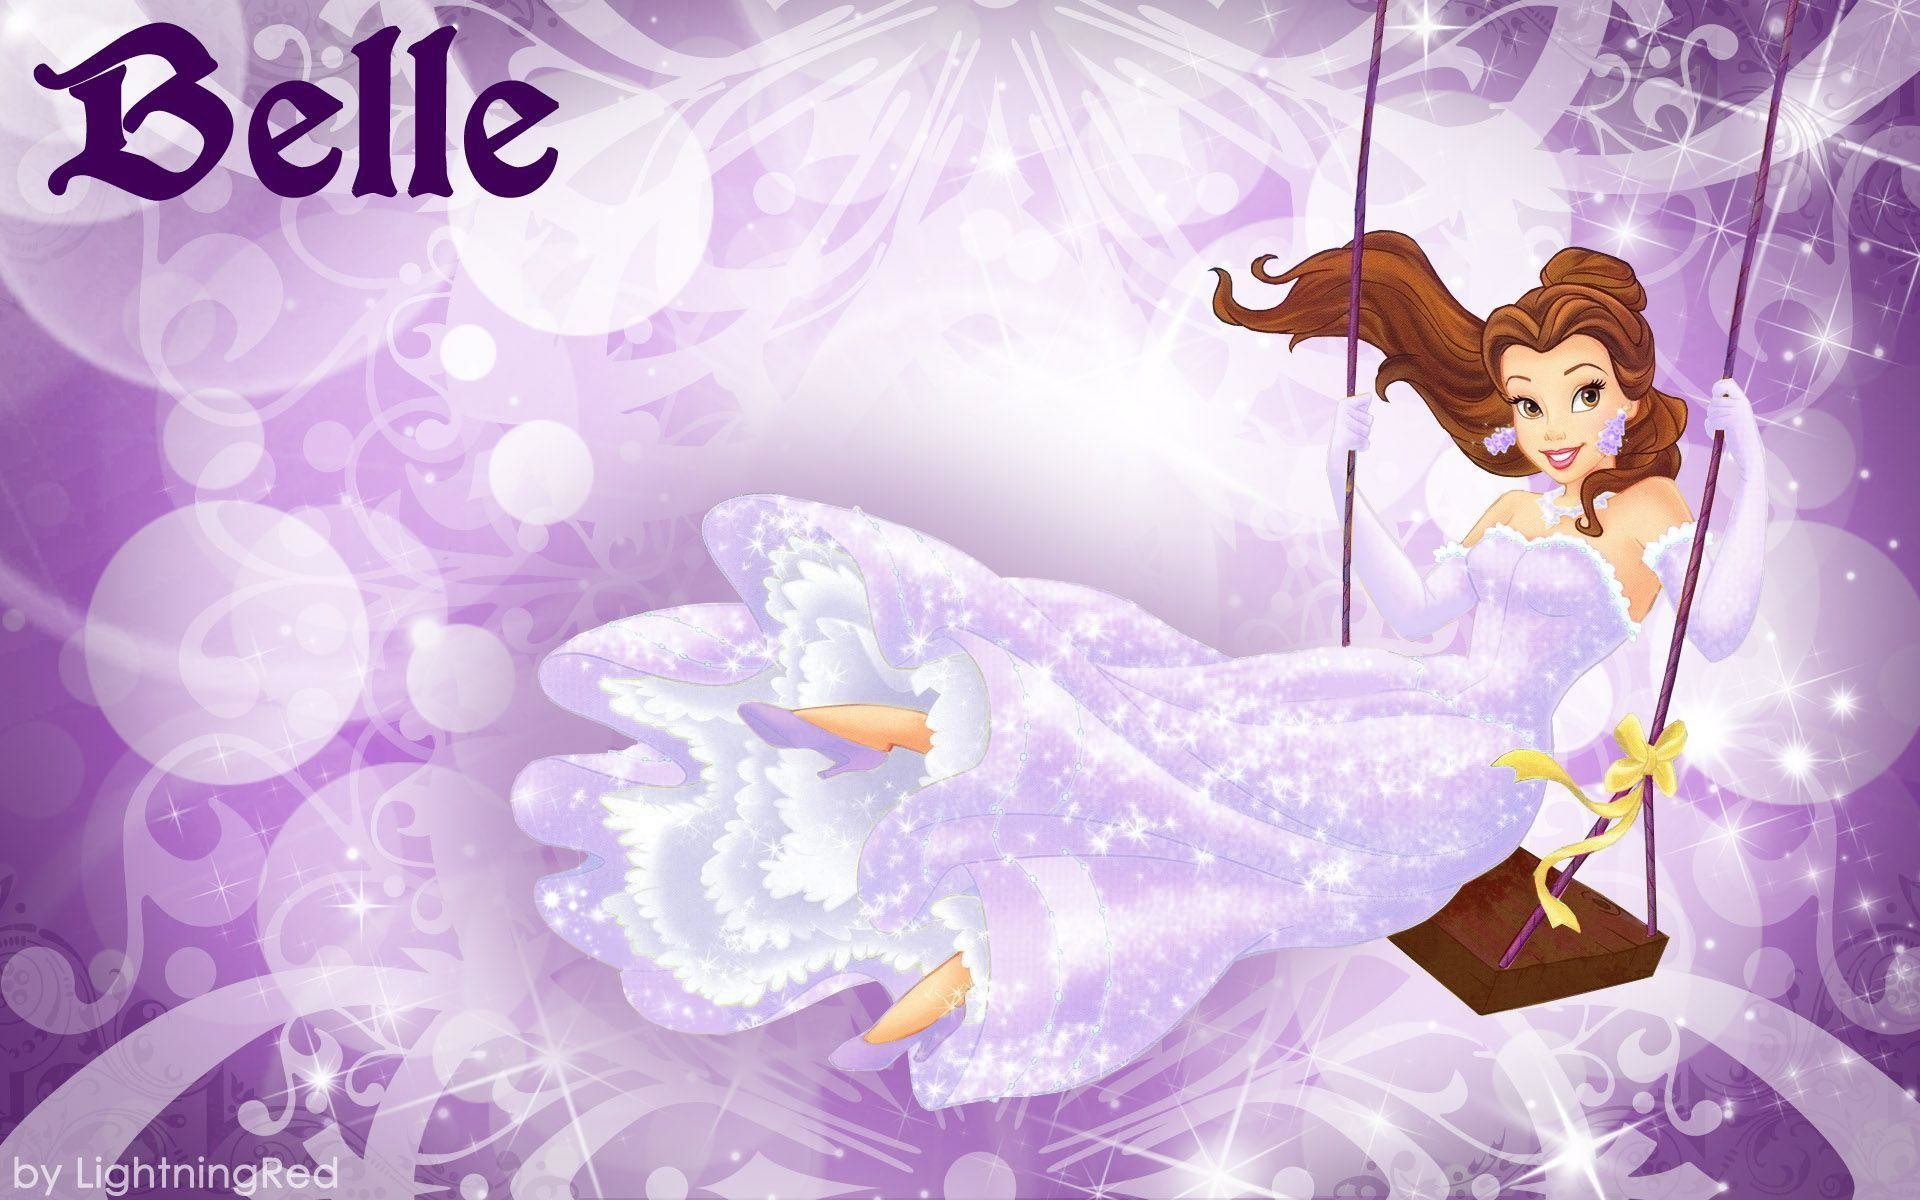 1920x1200 Purple Belle Wallpaper - Disney Princess Wallpaper (31673208) - Fanpop